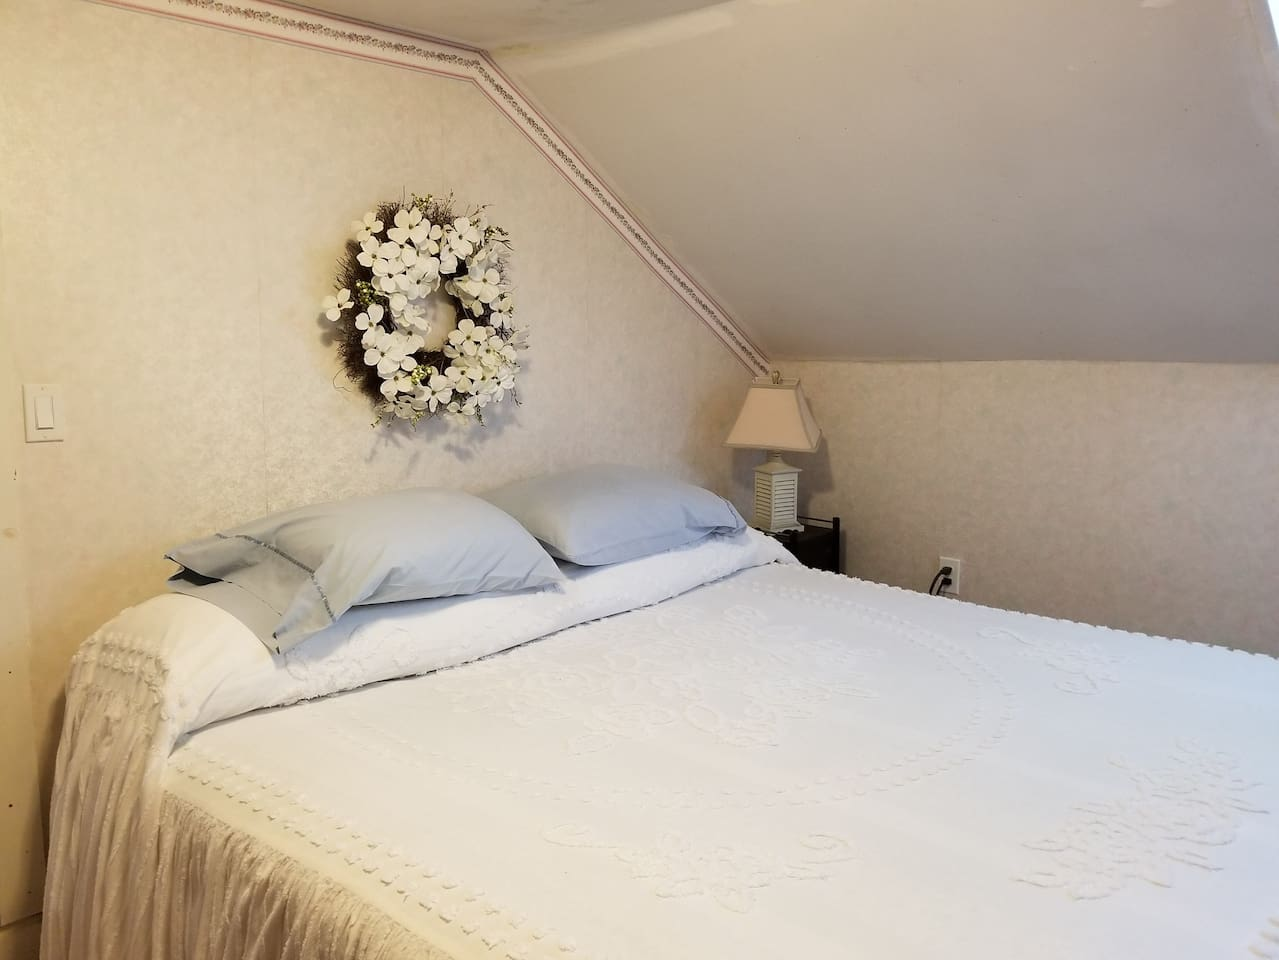 Cottage feel with a king size bed in original bedroom of home built in 1896.  Dresser and comfy chair too.  Quiet bedroom.